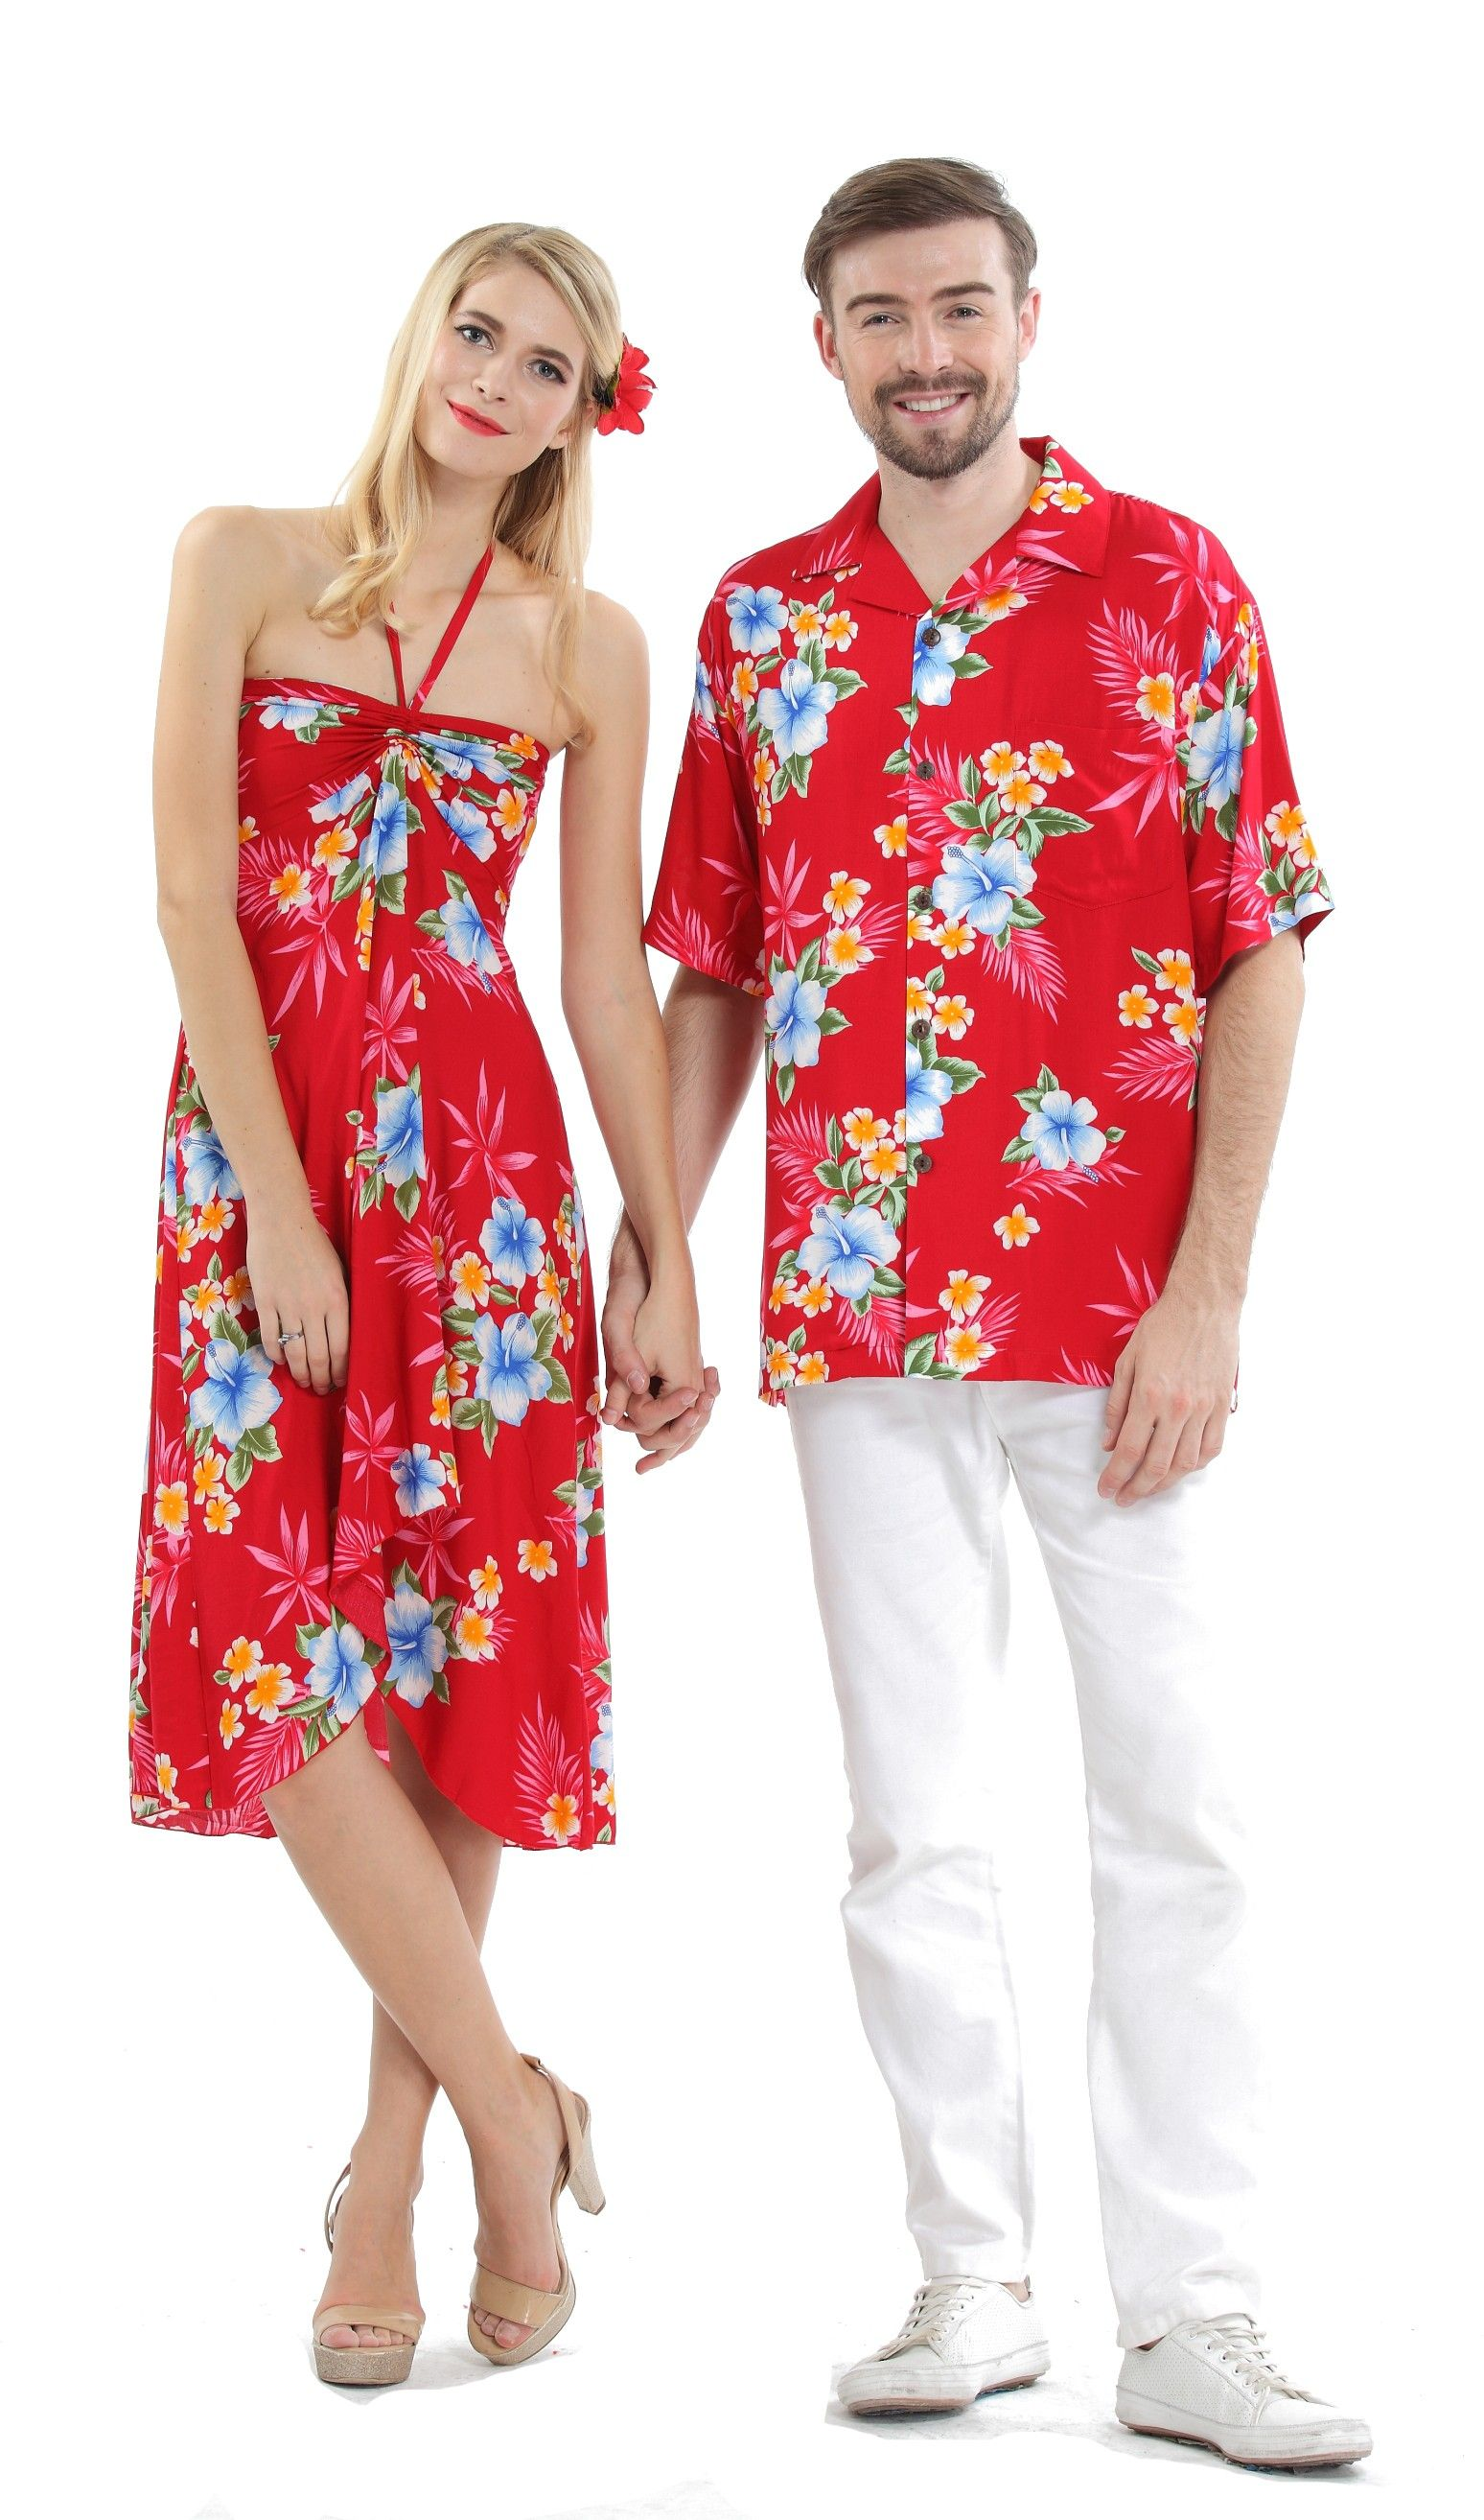 dd0b6540e3 Couple Matching Hawaiian Luau Cruise Party Outfit Shirt Dress in Hibiscus  Red